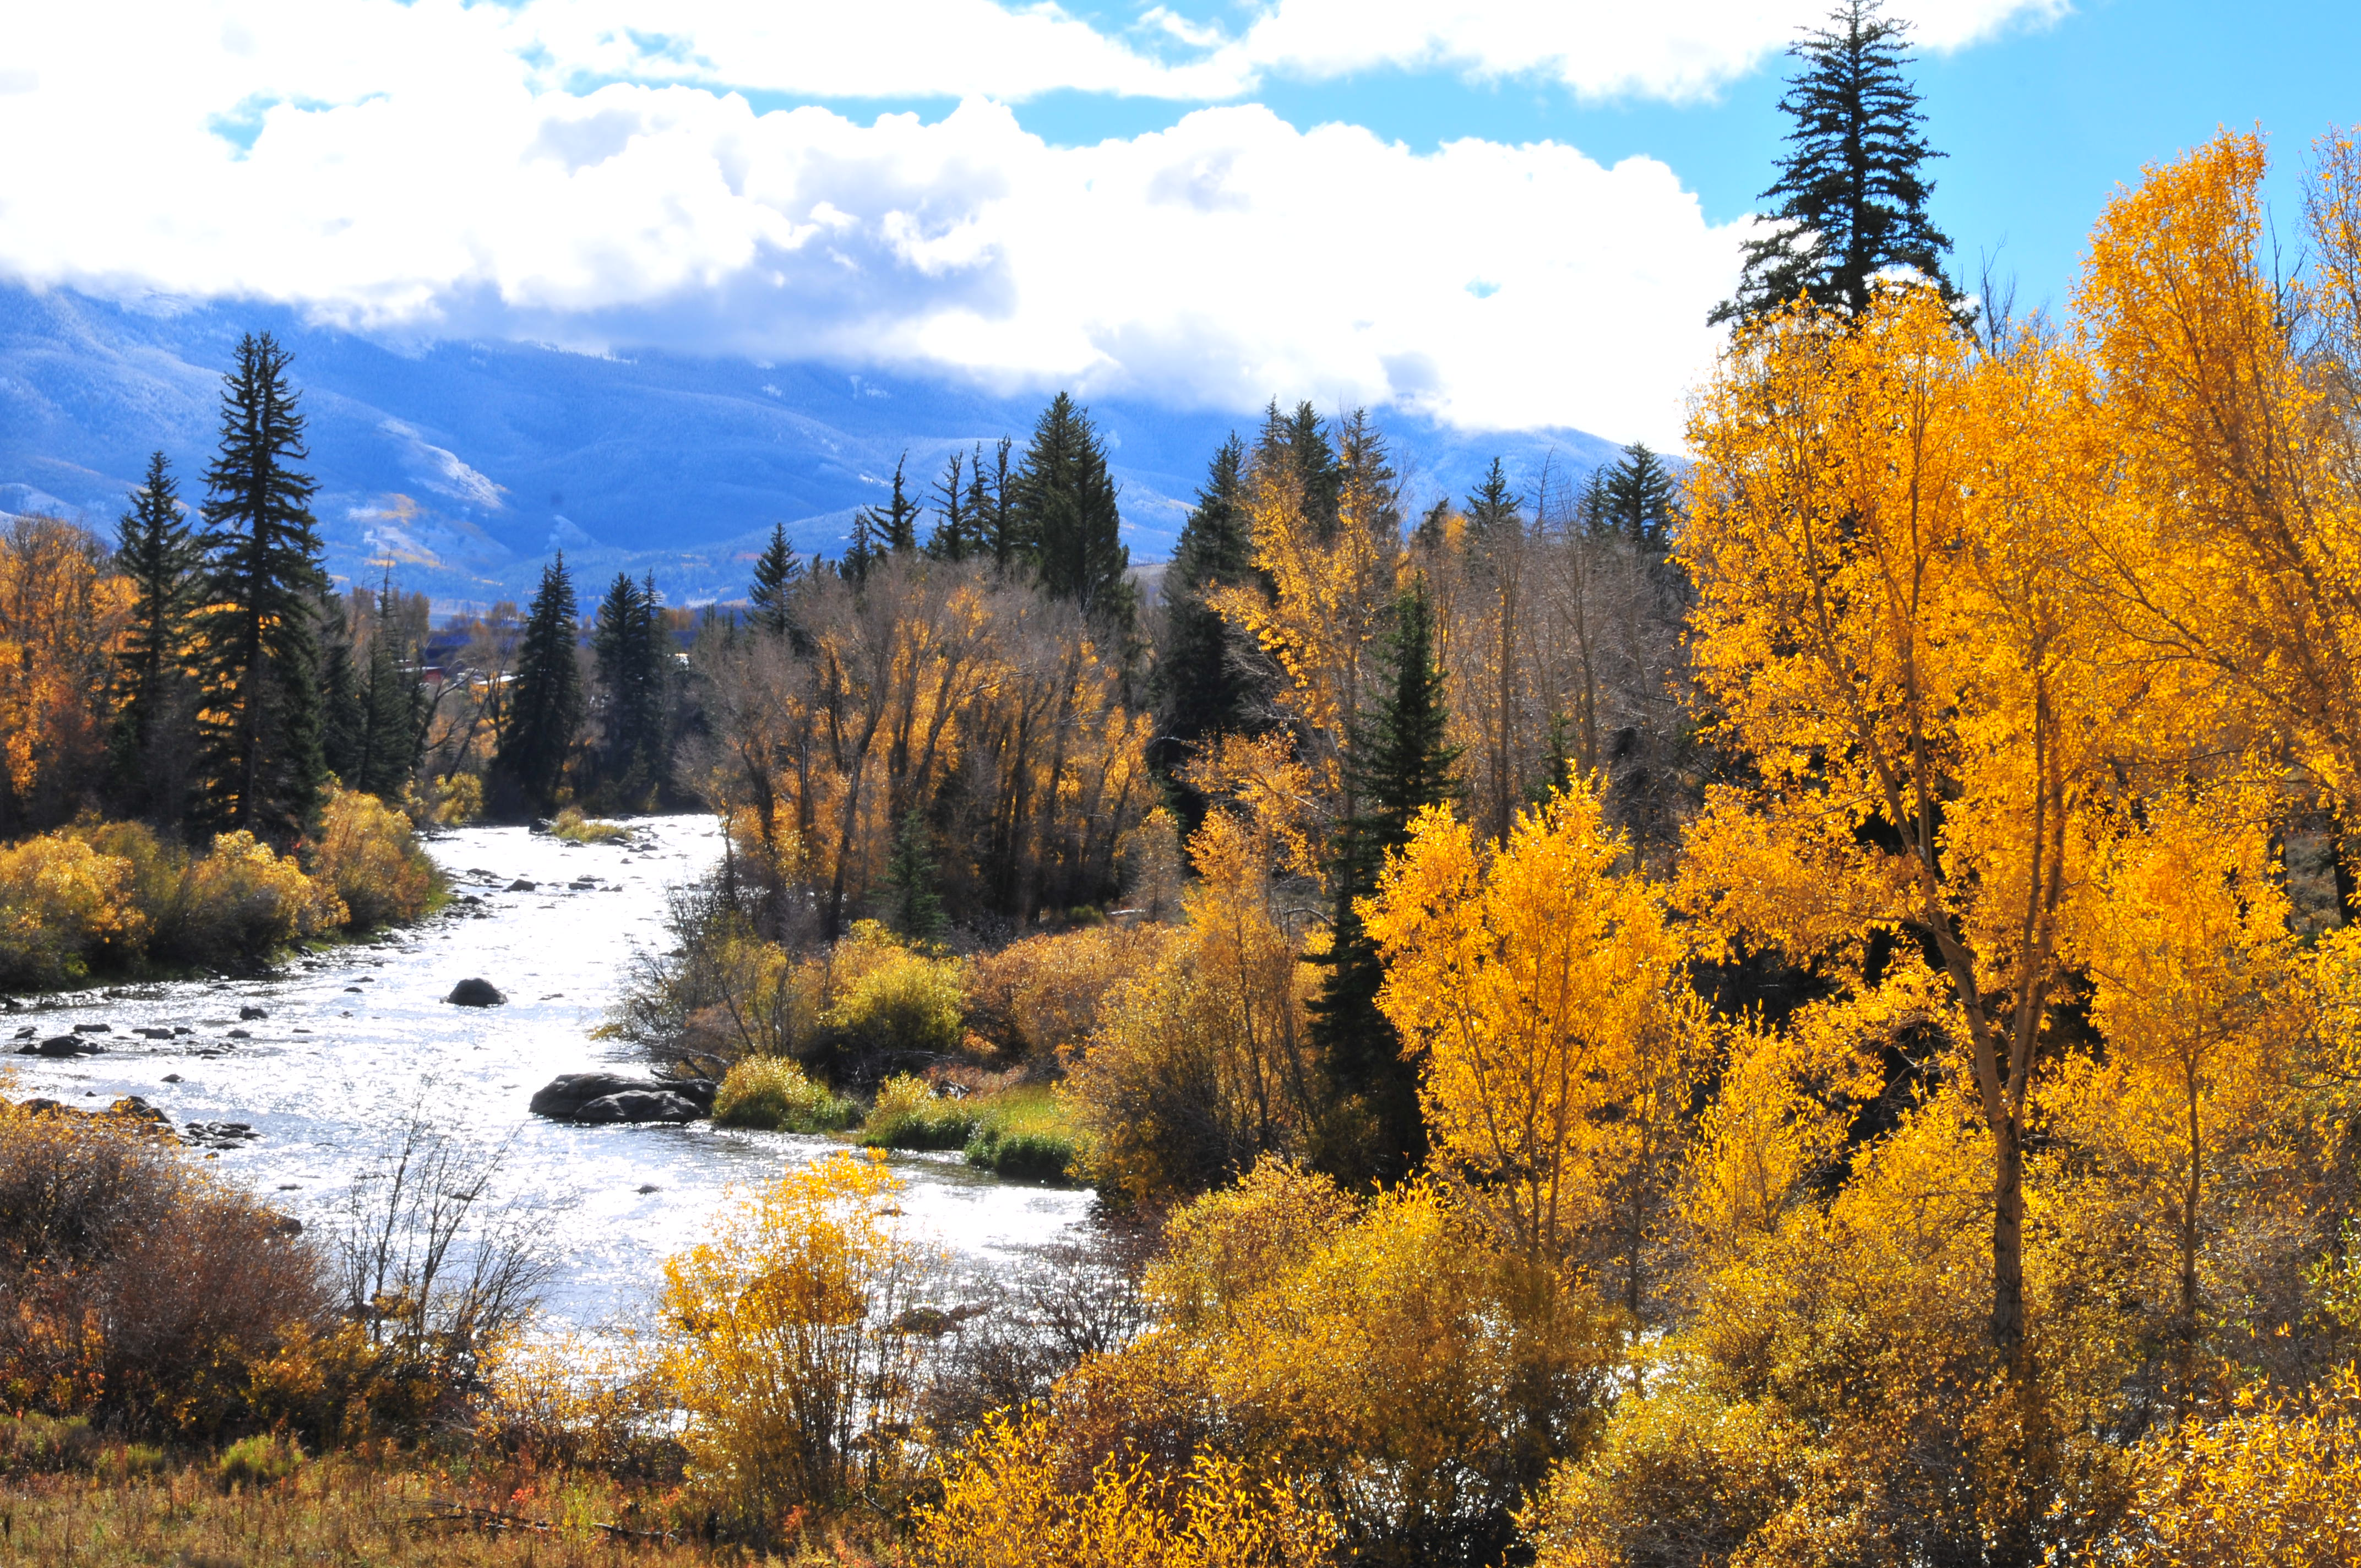 Blue River in Fall